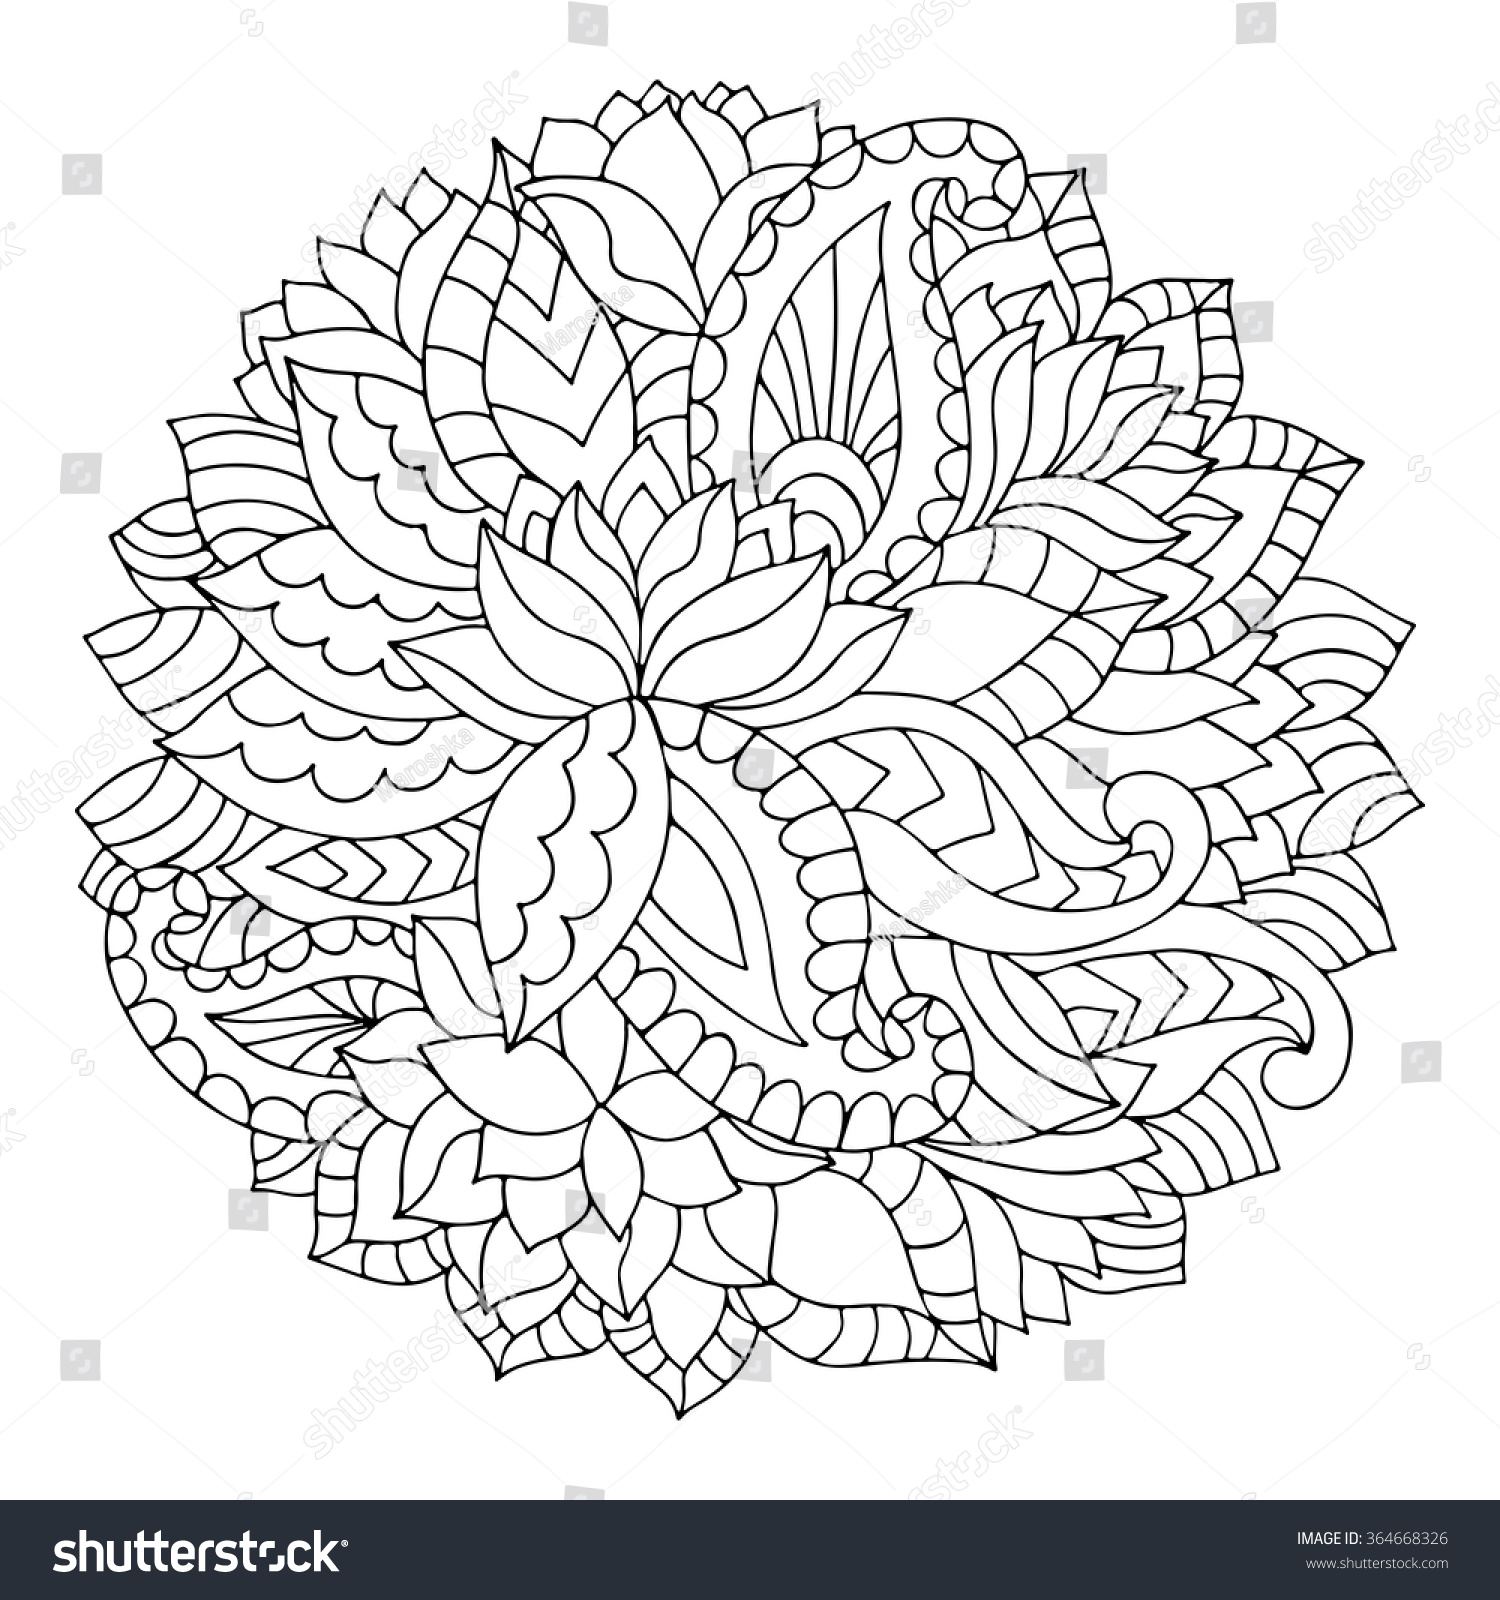 Black White Circle Indian Floral Ornament Stock Vector